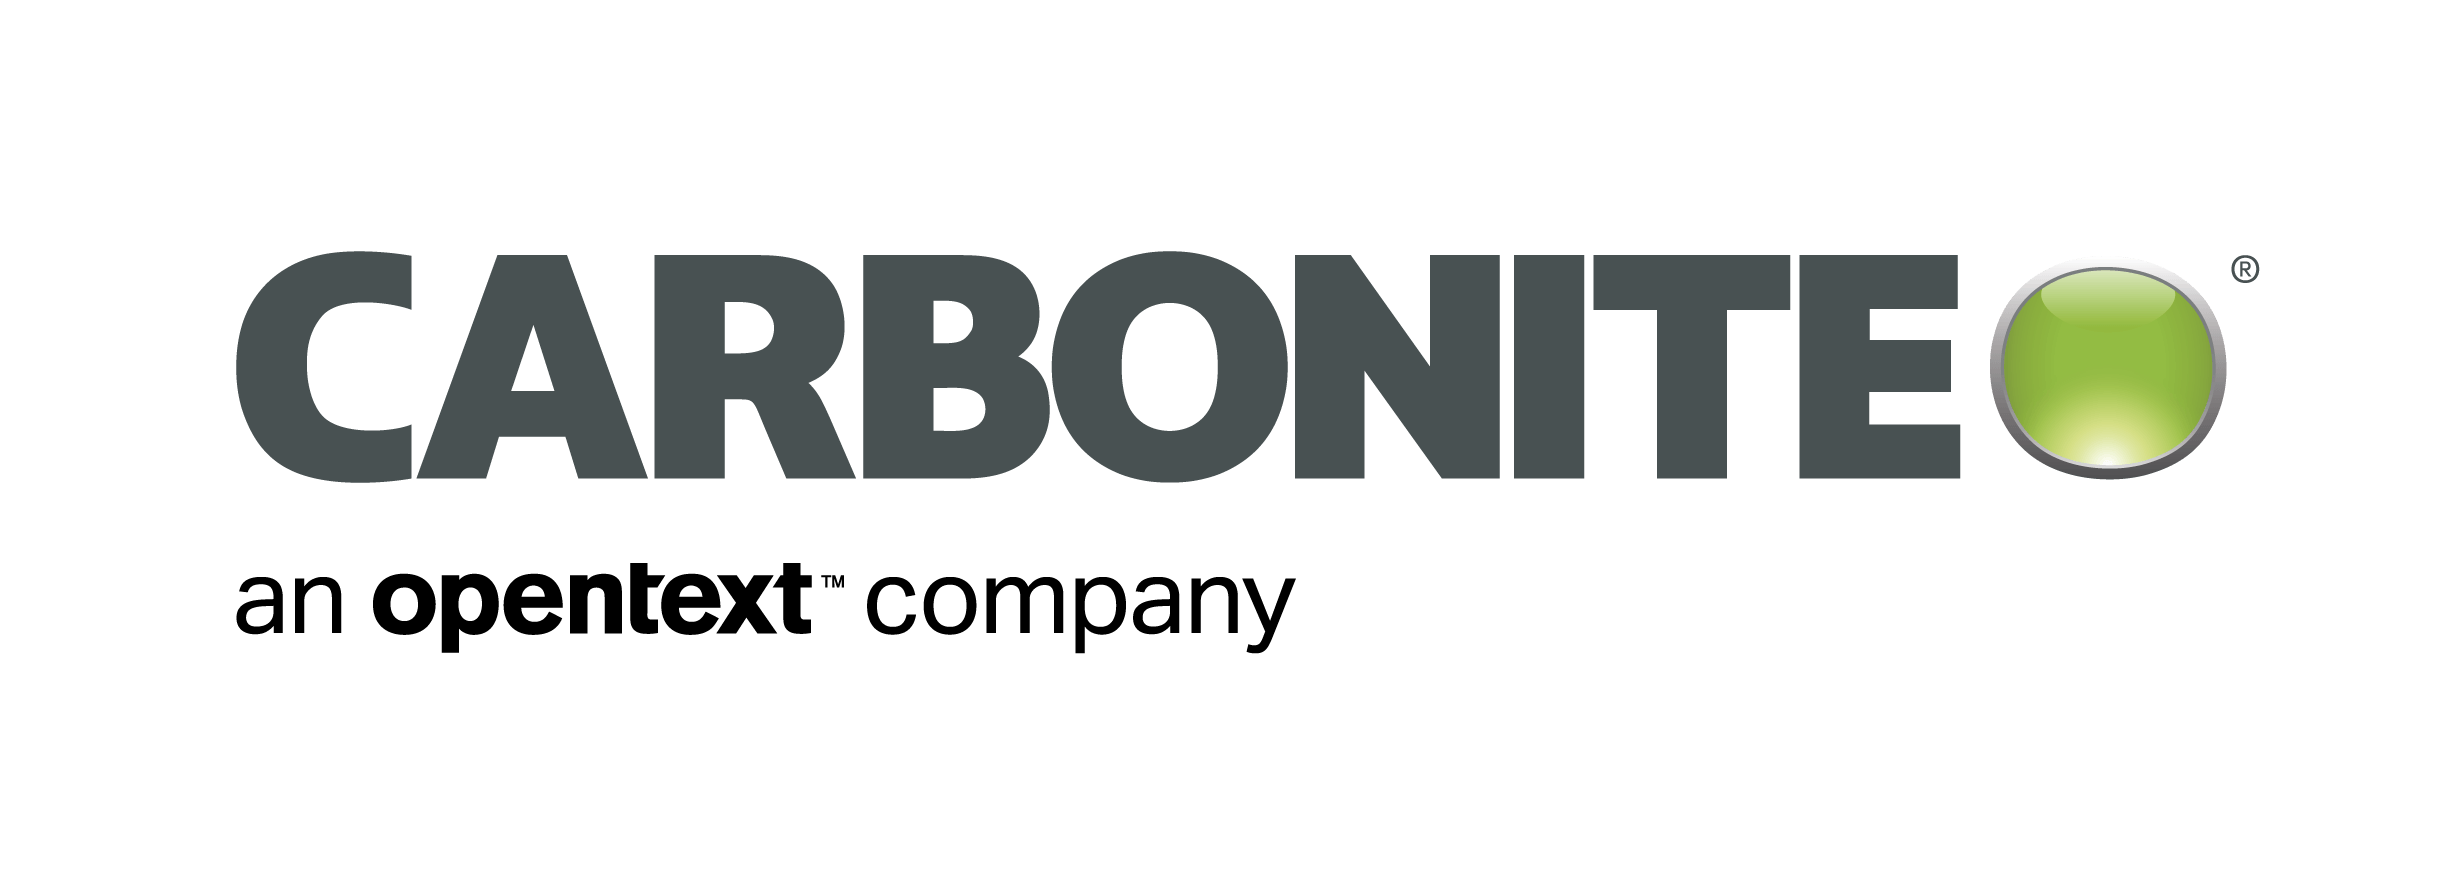 Carbonite - an-opentext-company - logo